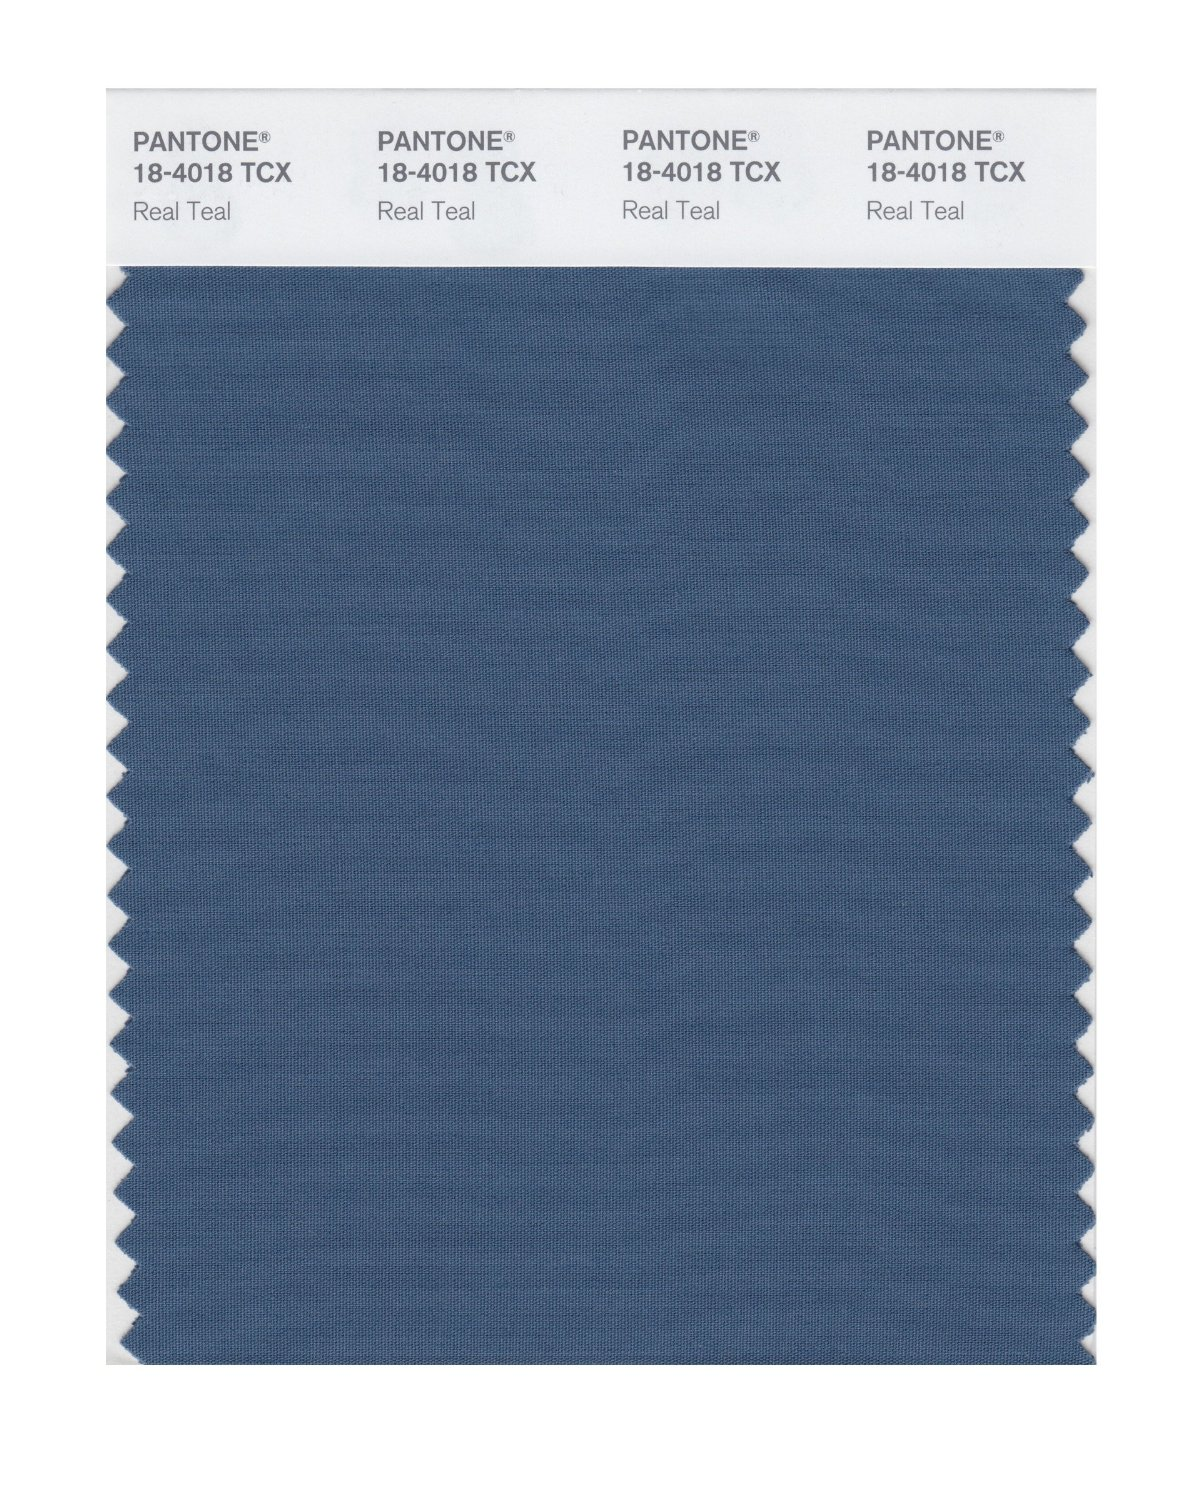 Pantone Smart Swatch 18-4018 Real Teal